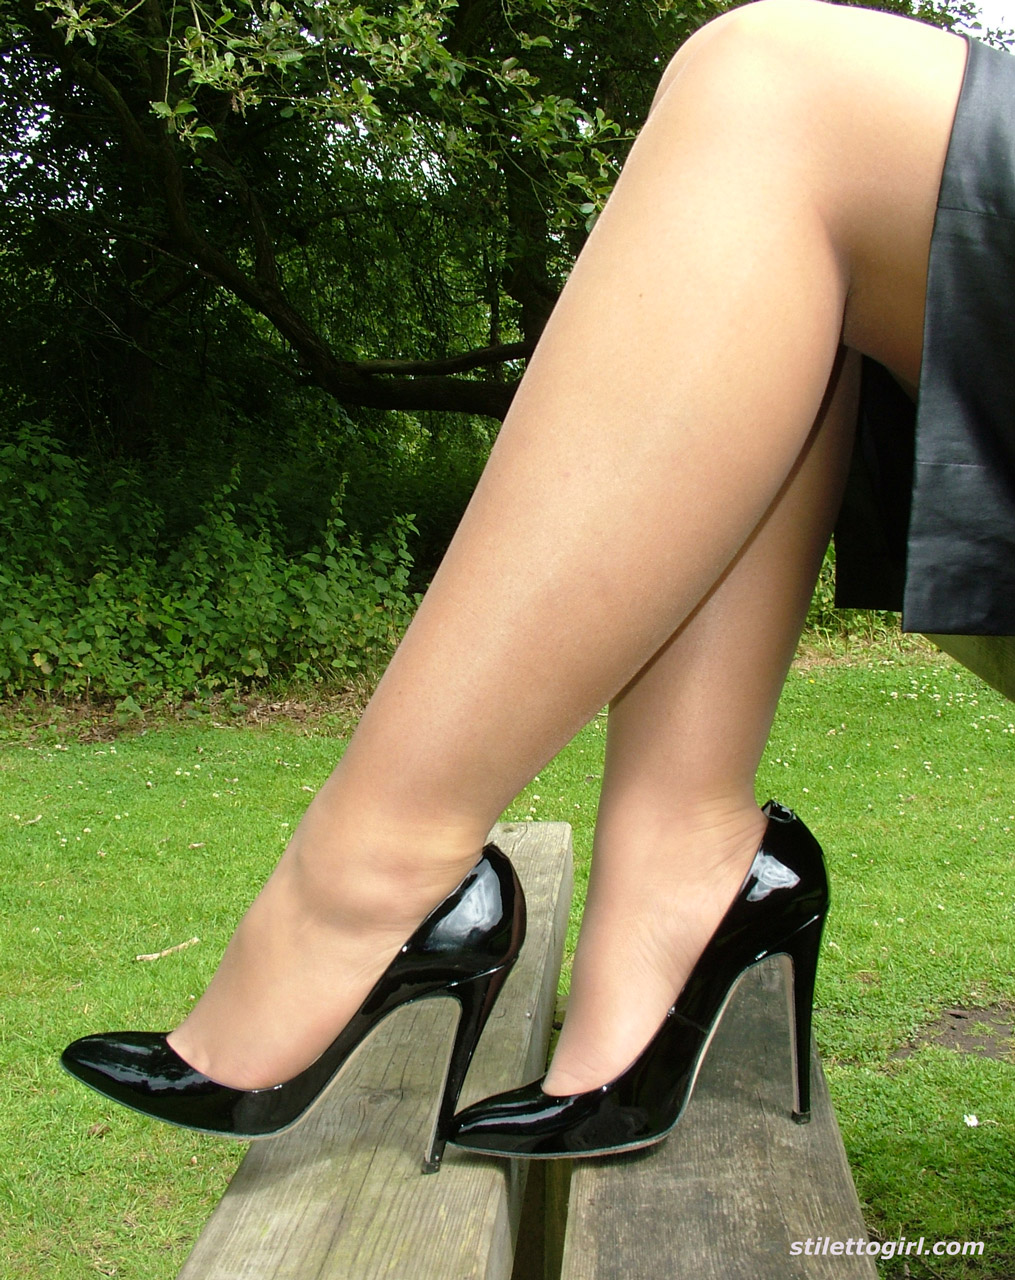 Think, Stiletto girls legs visible, not